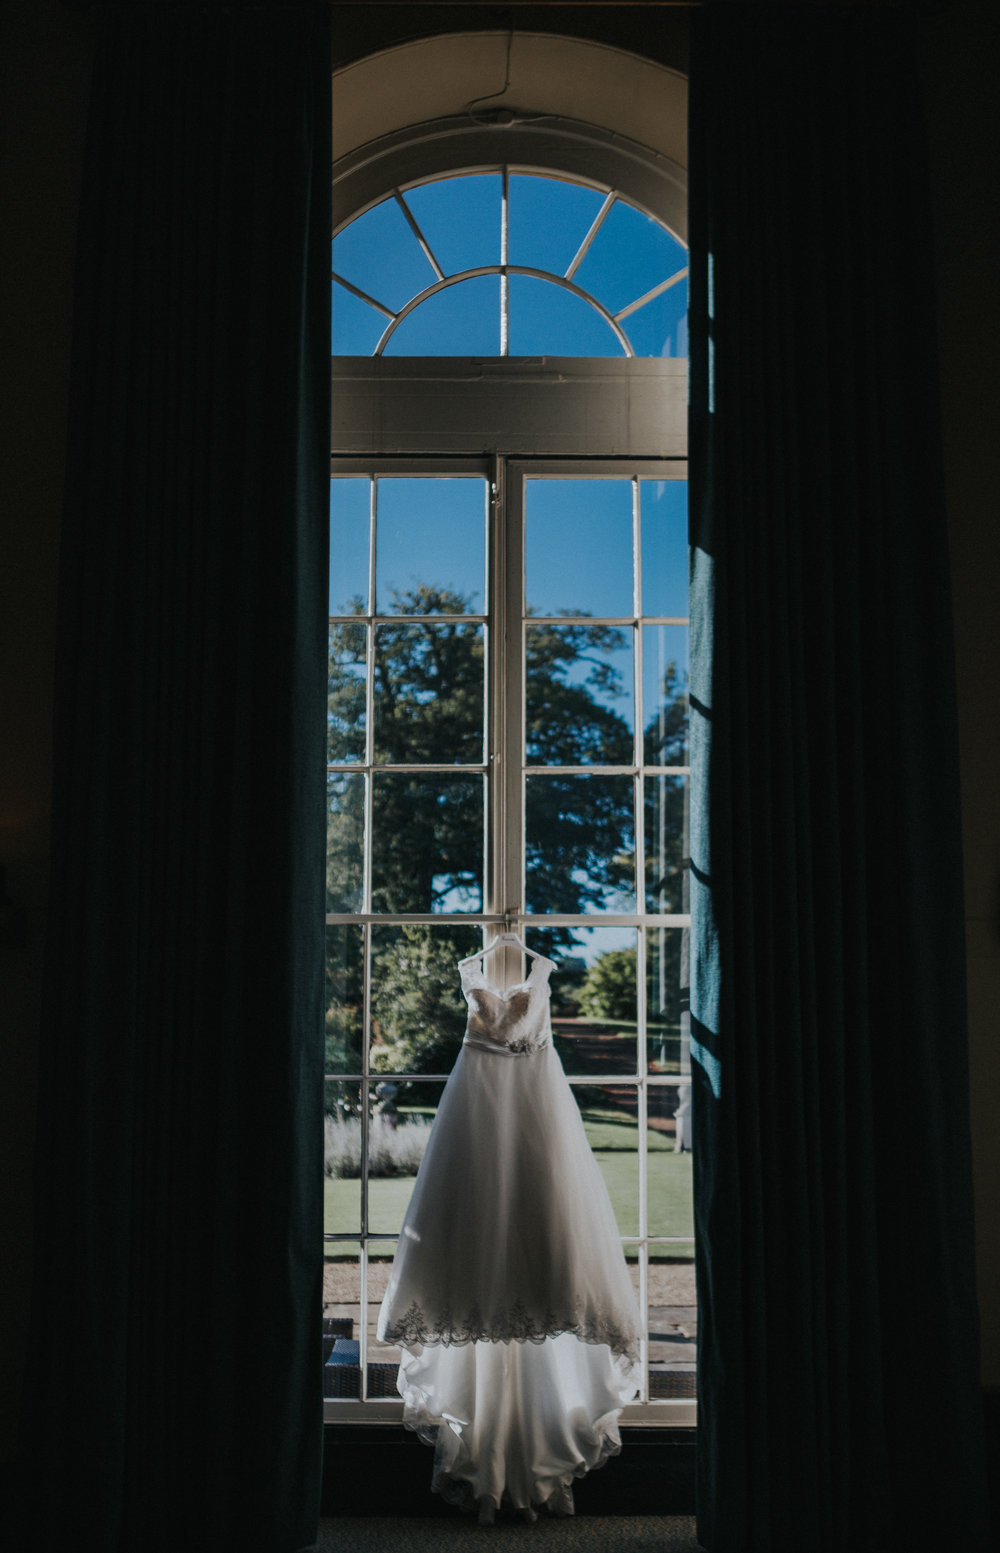 london-bedfordshire-uk-wedding-photography-woburn-scultpture-gallery-wedding-dress-03